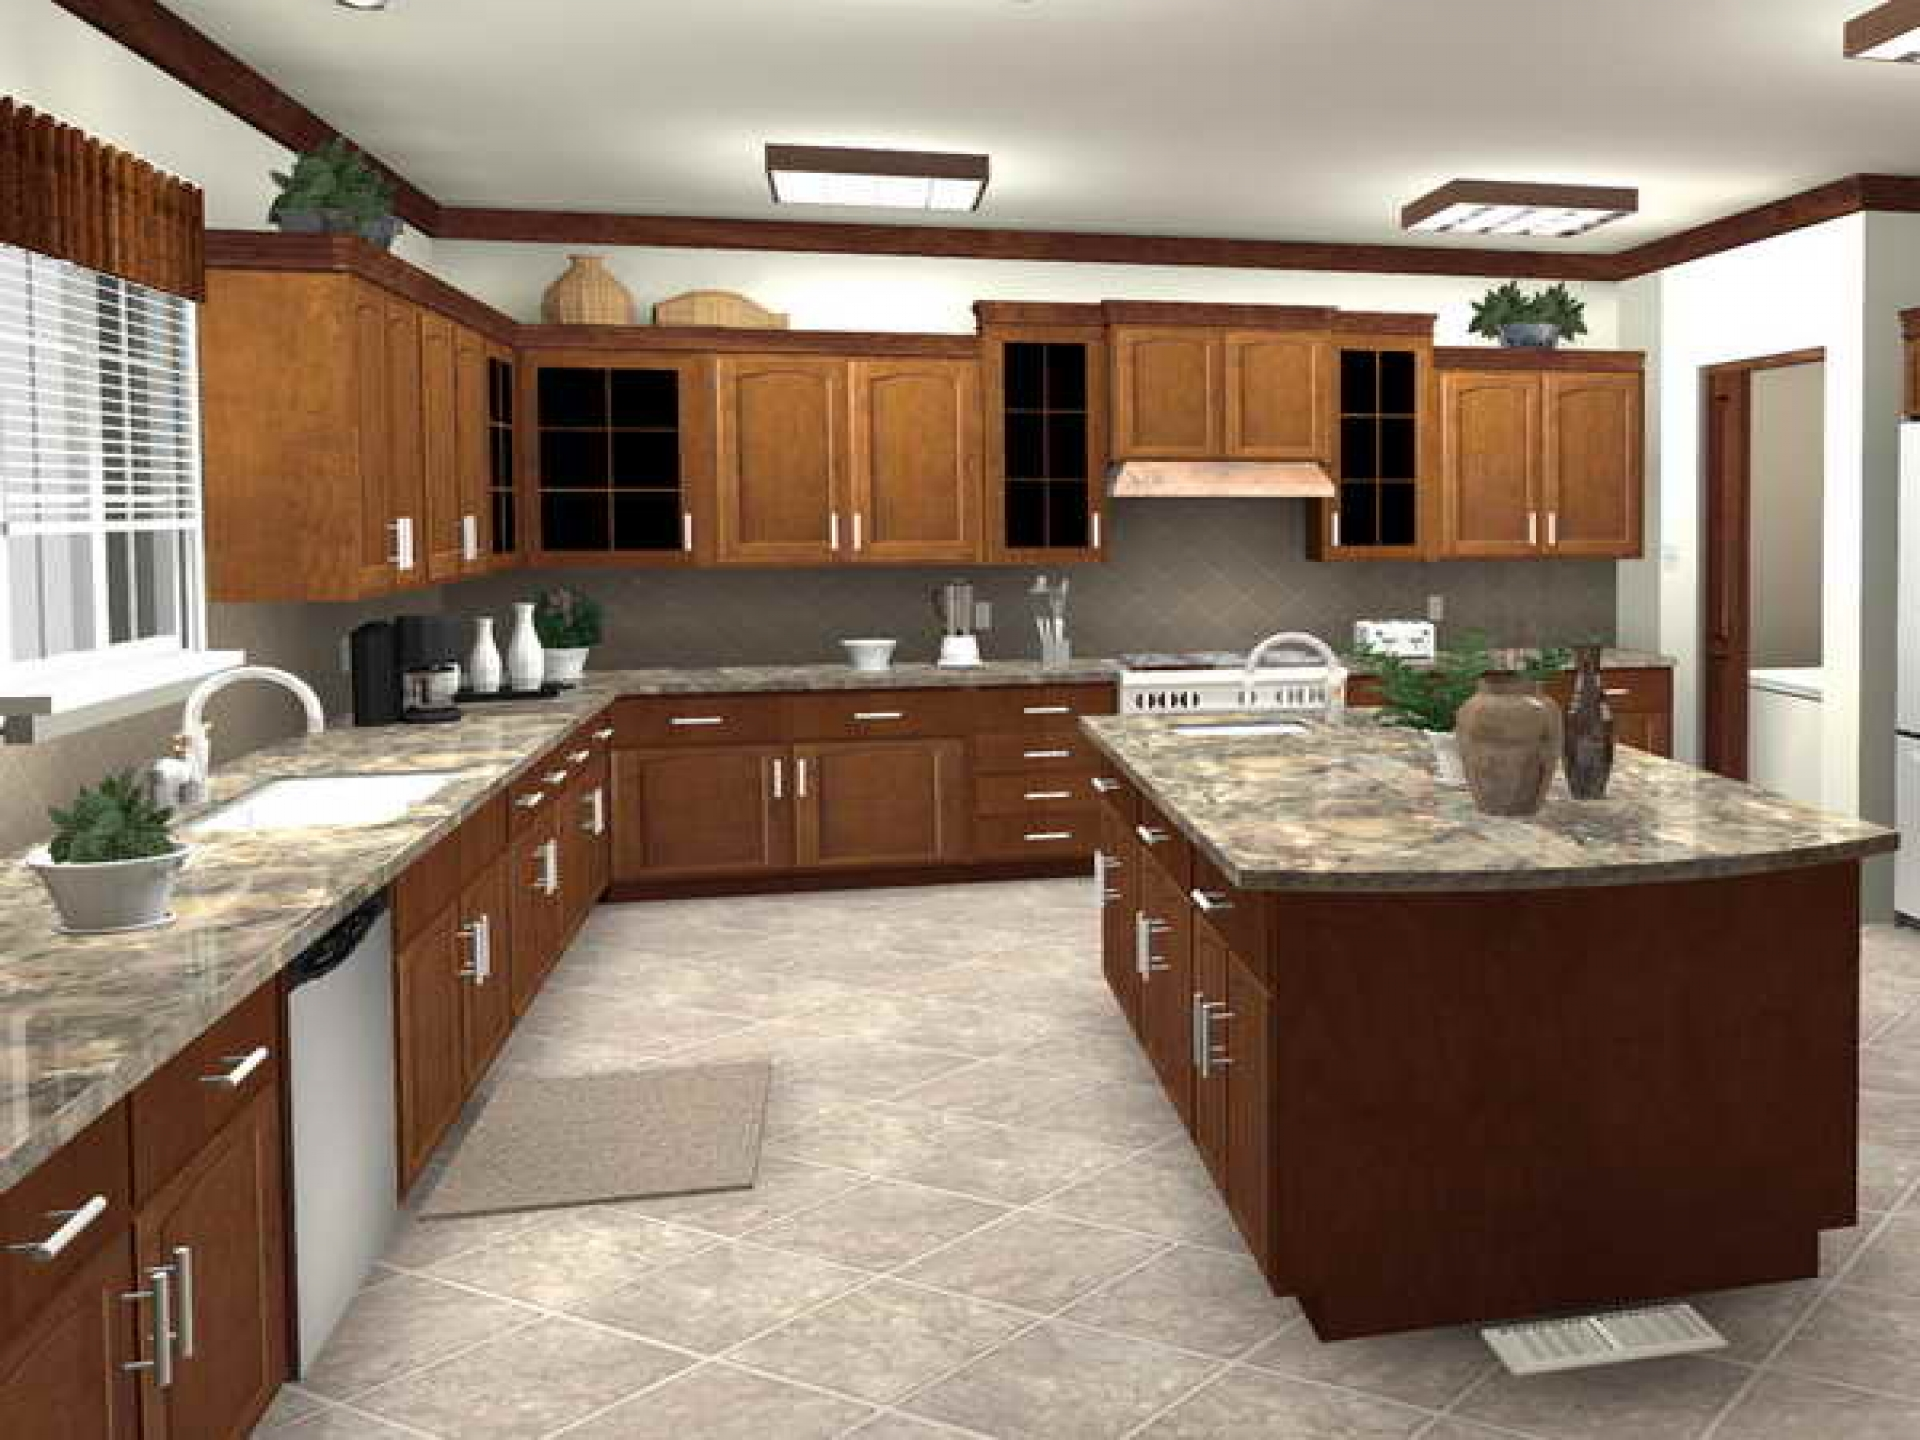 country kitchen designs 2013 photo - 9